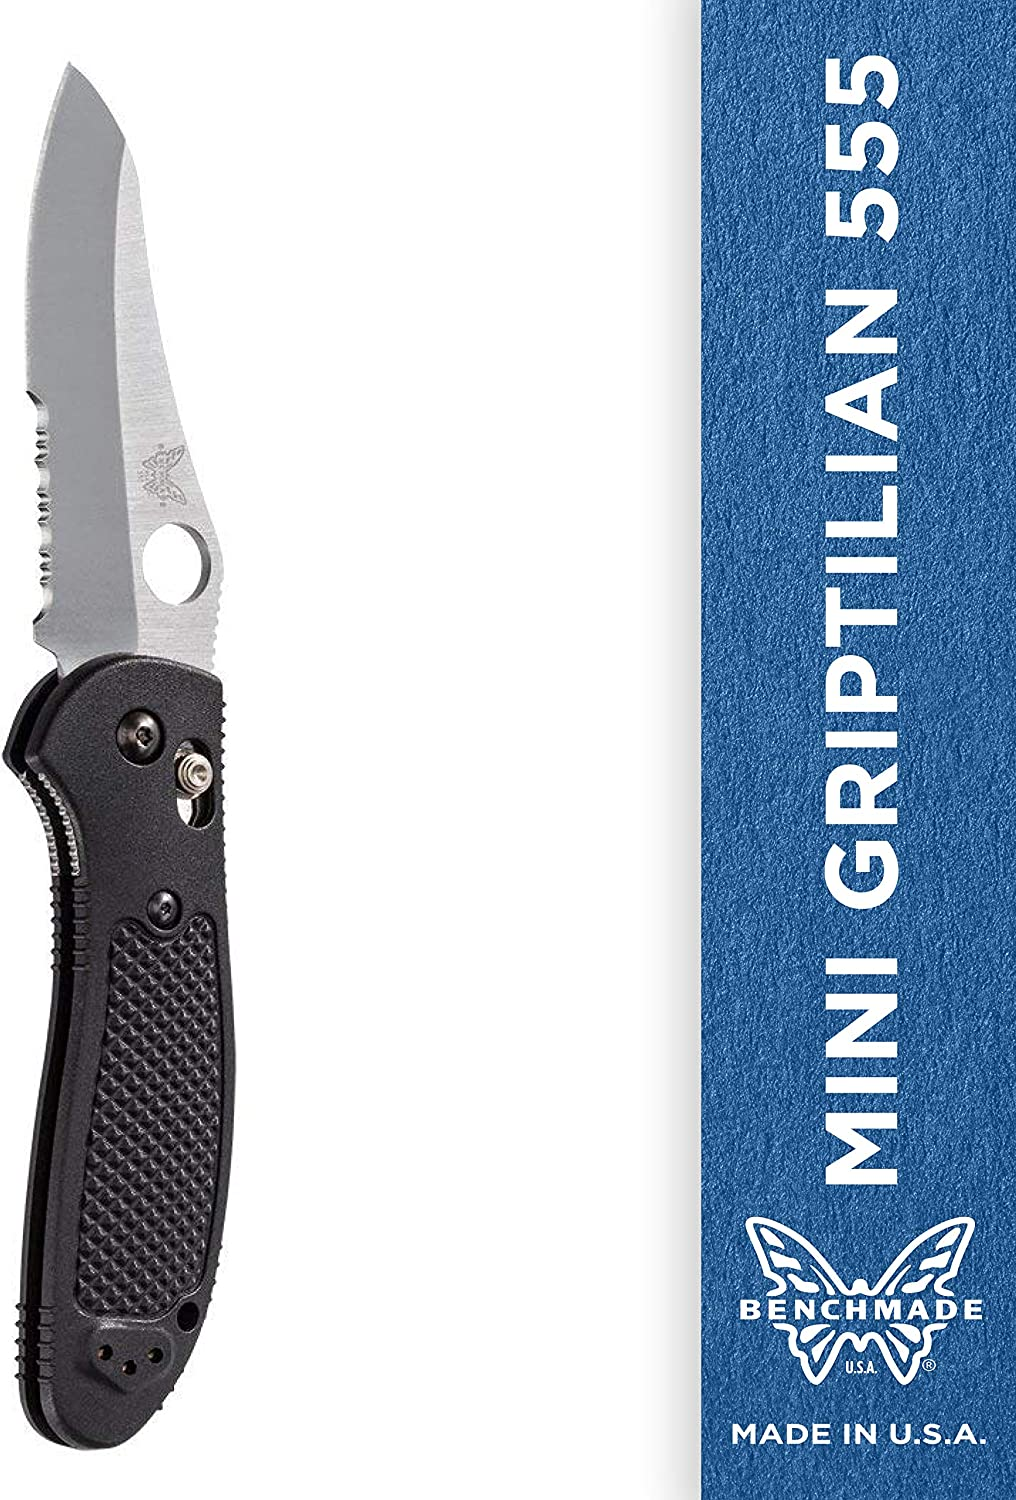 Benchmade UnisexAdult Benchmade  Mini Griptilian 555 Knife with CPMS30V Steel, Sheepsfoot Blade, Serrated Edge 555SS30V, Satin Finish Black Handle